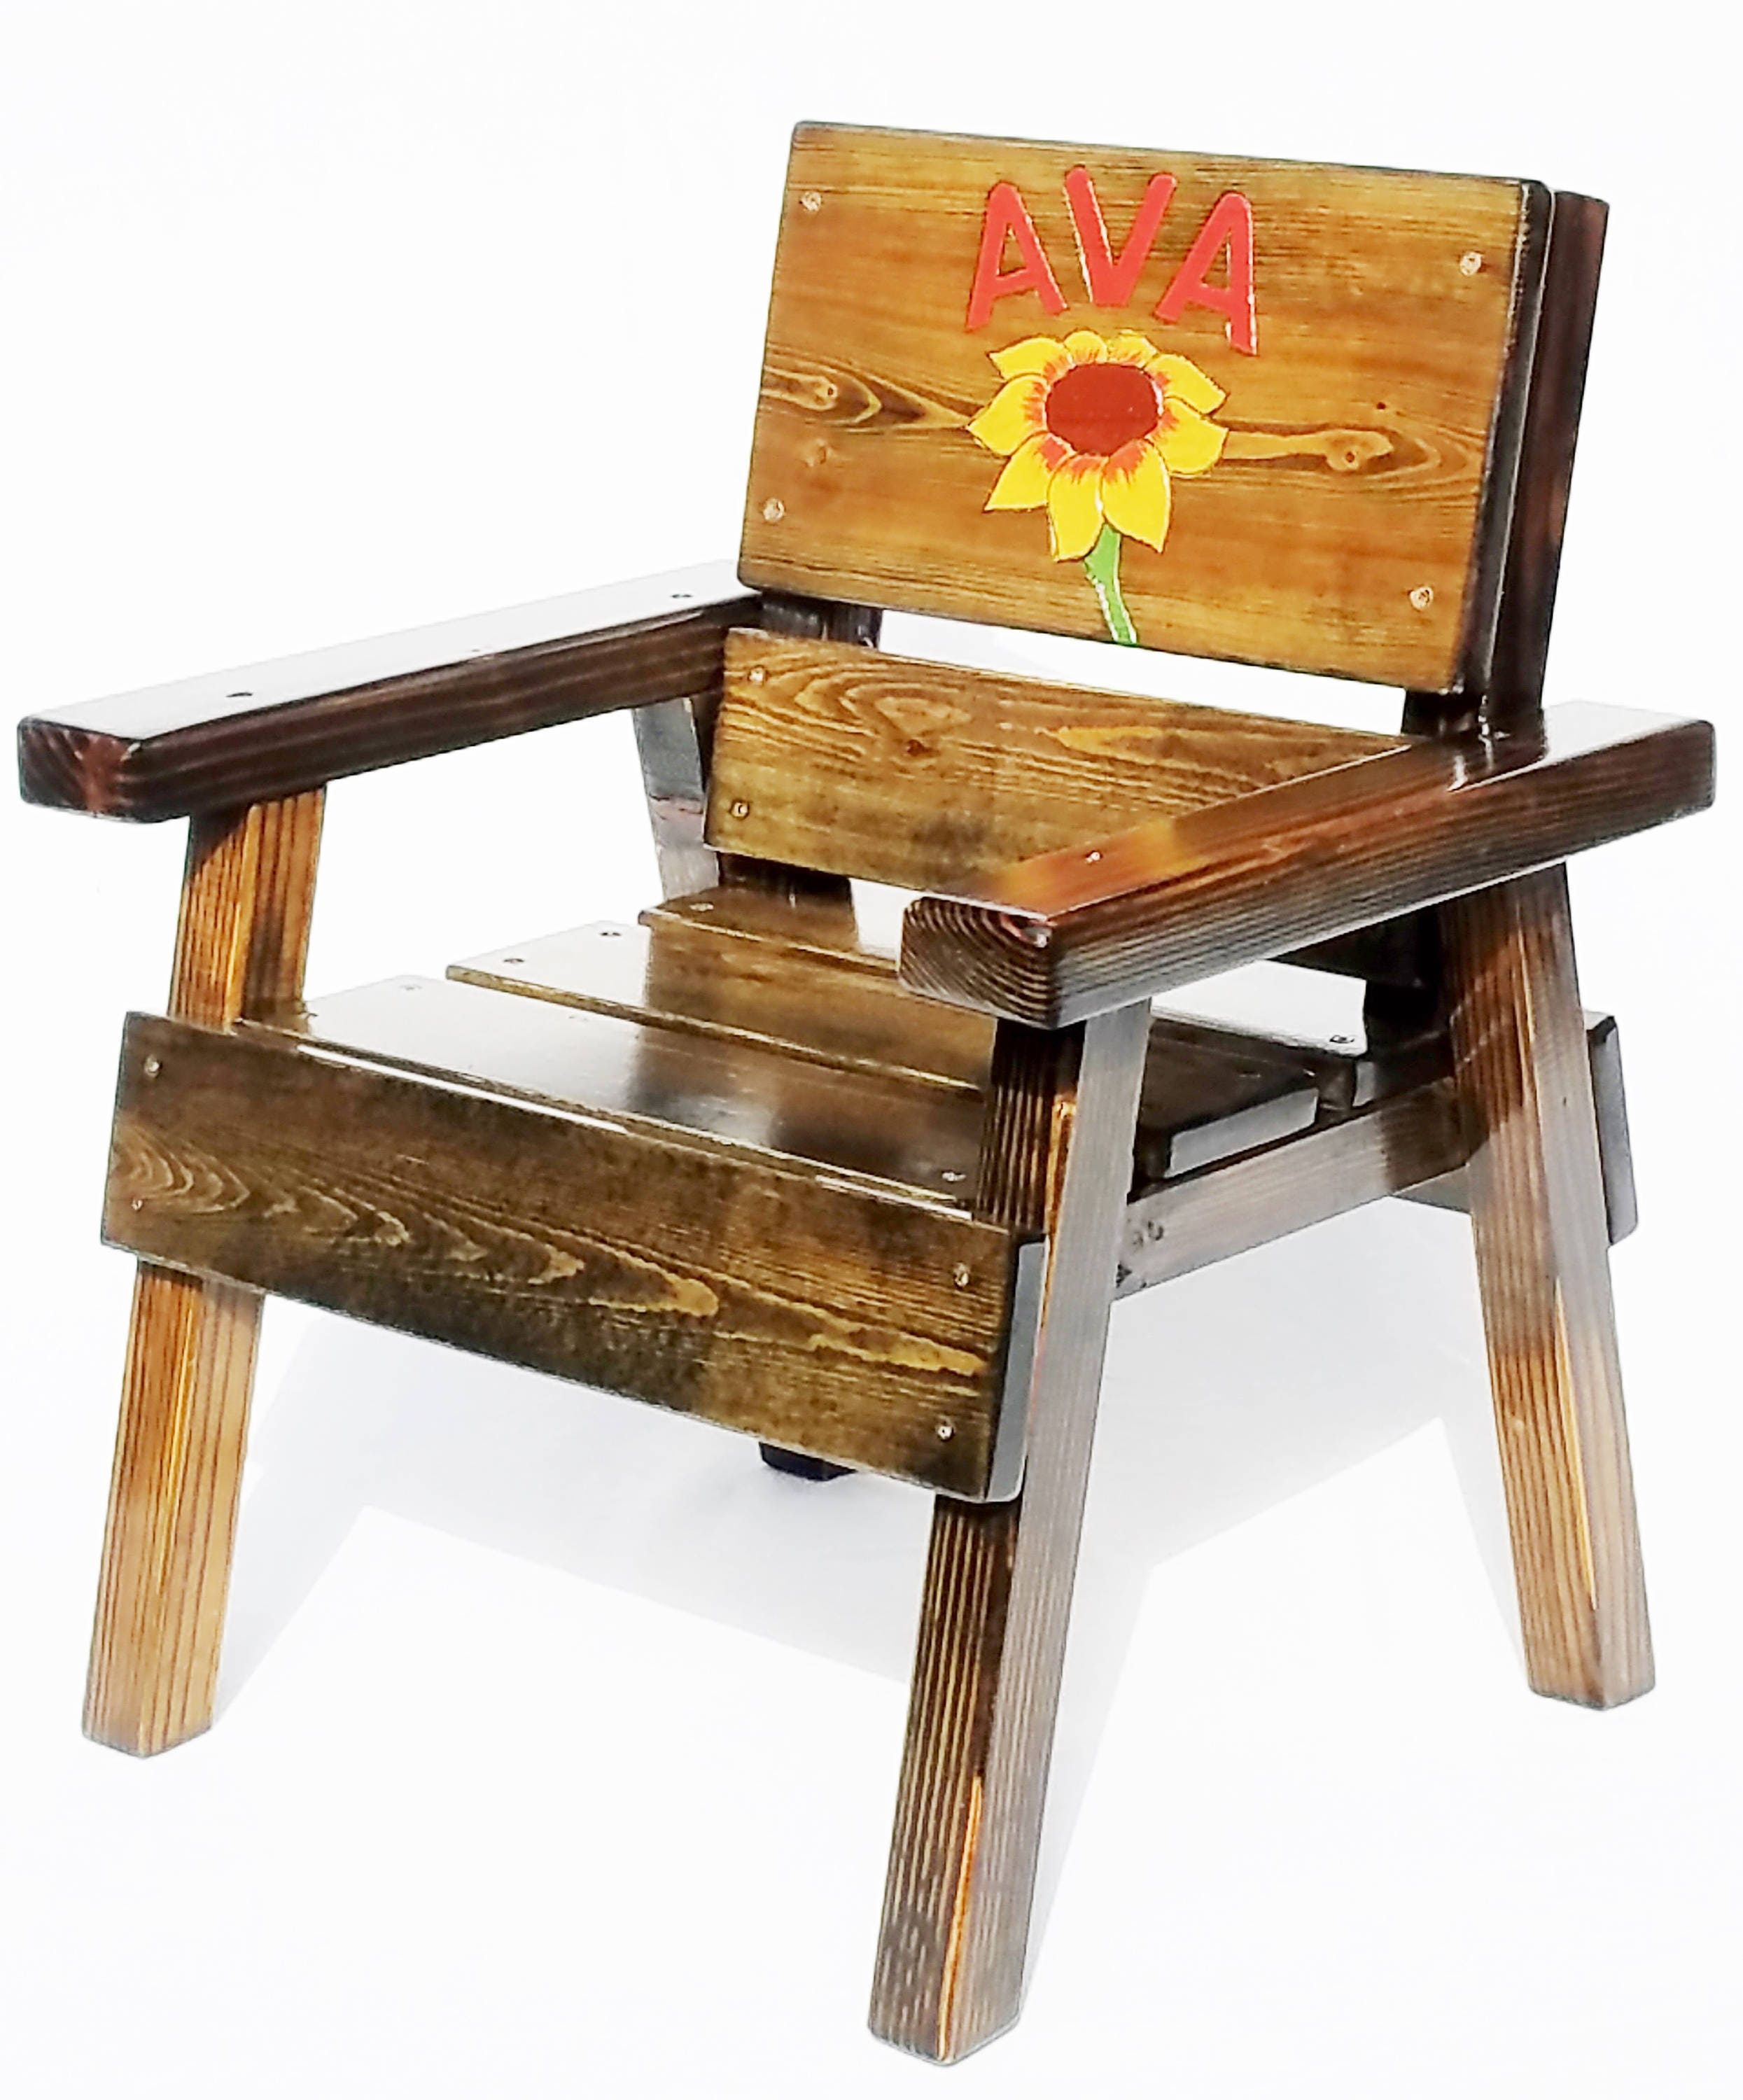 zoom Personalized Kids Gift Wood Kids Chair